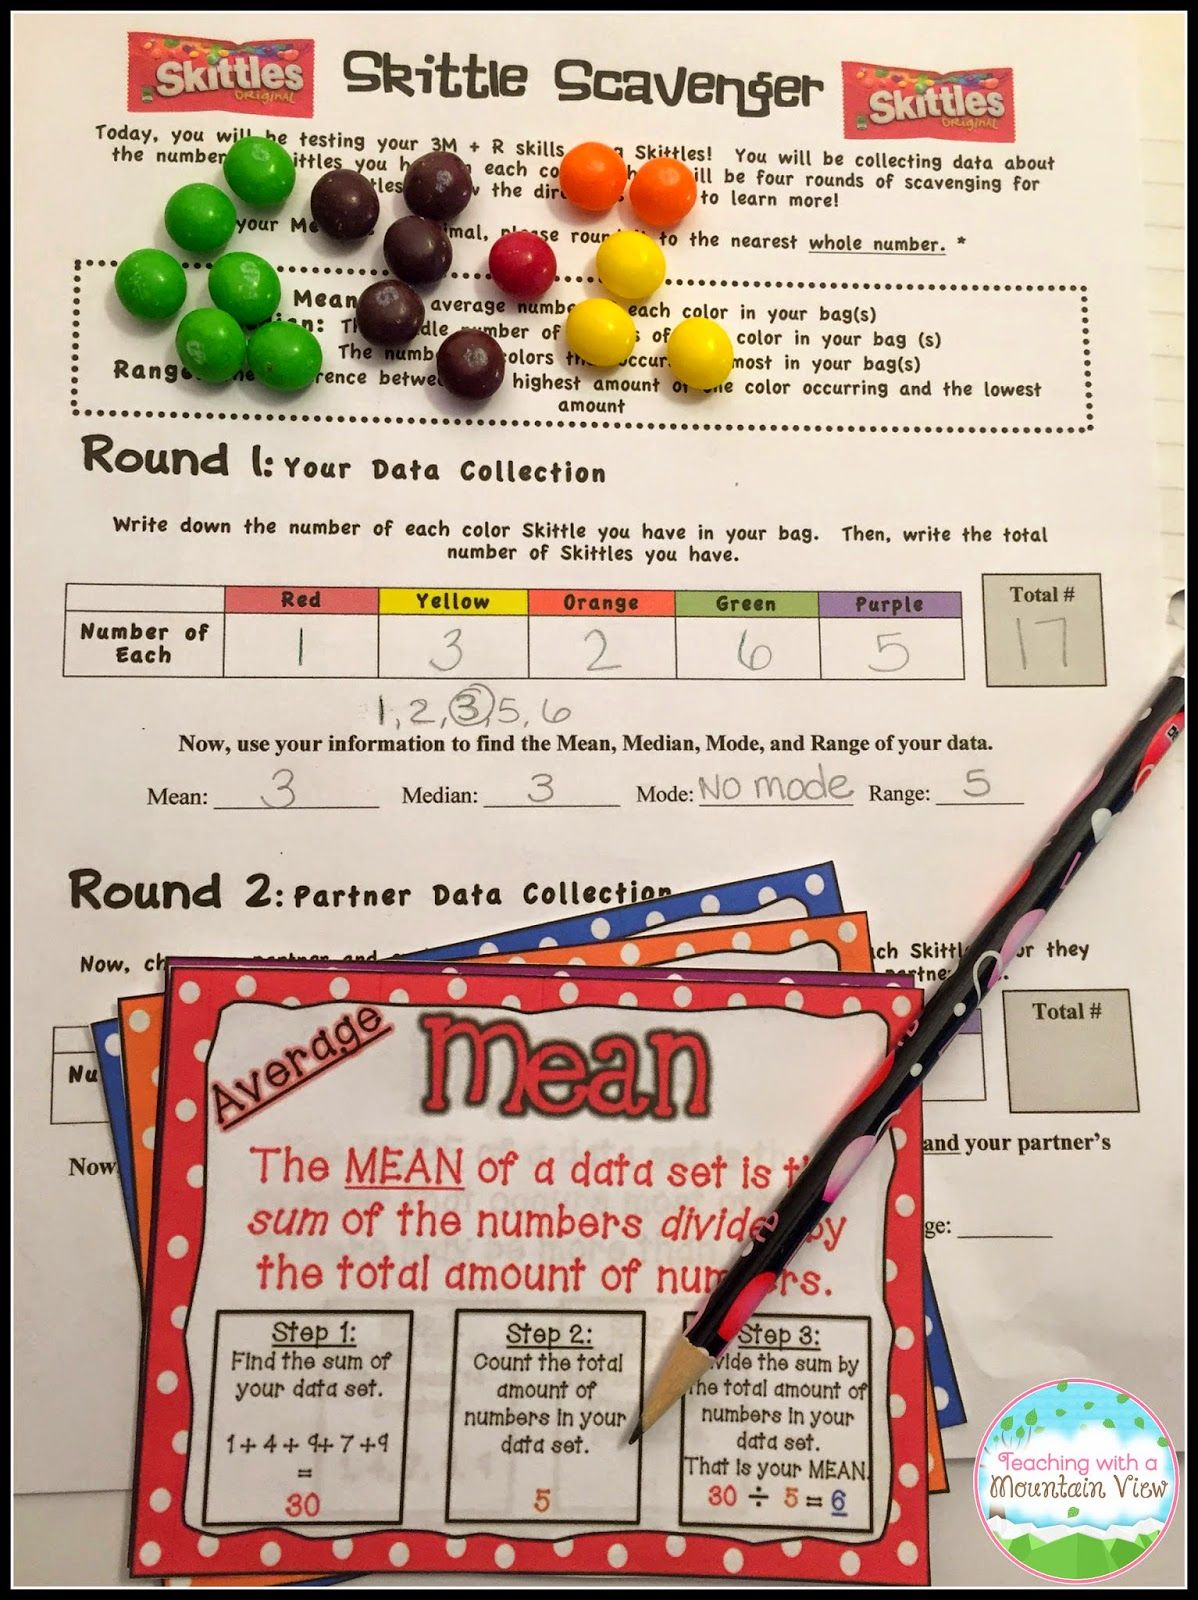 Mean, Median, Mode, Range Activity With Skittles! This Activity Is Great Fun